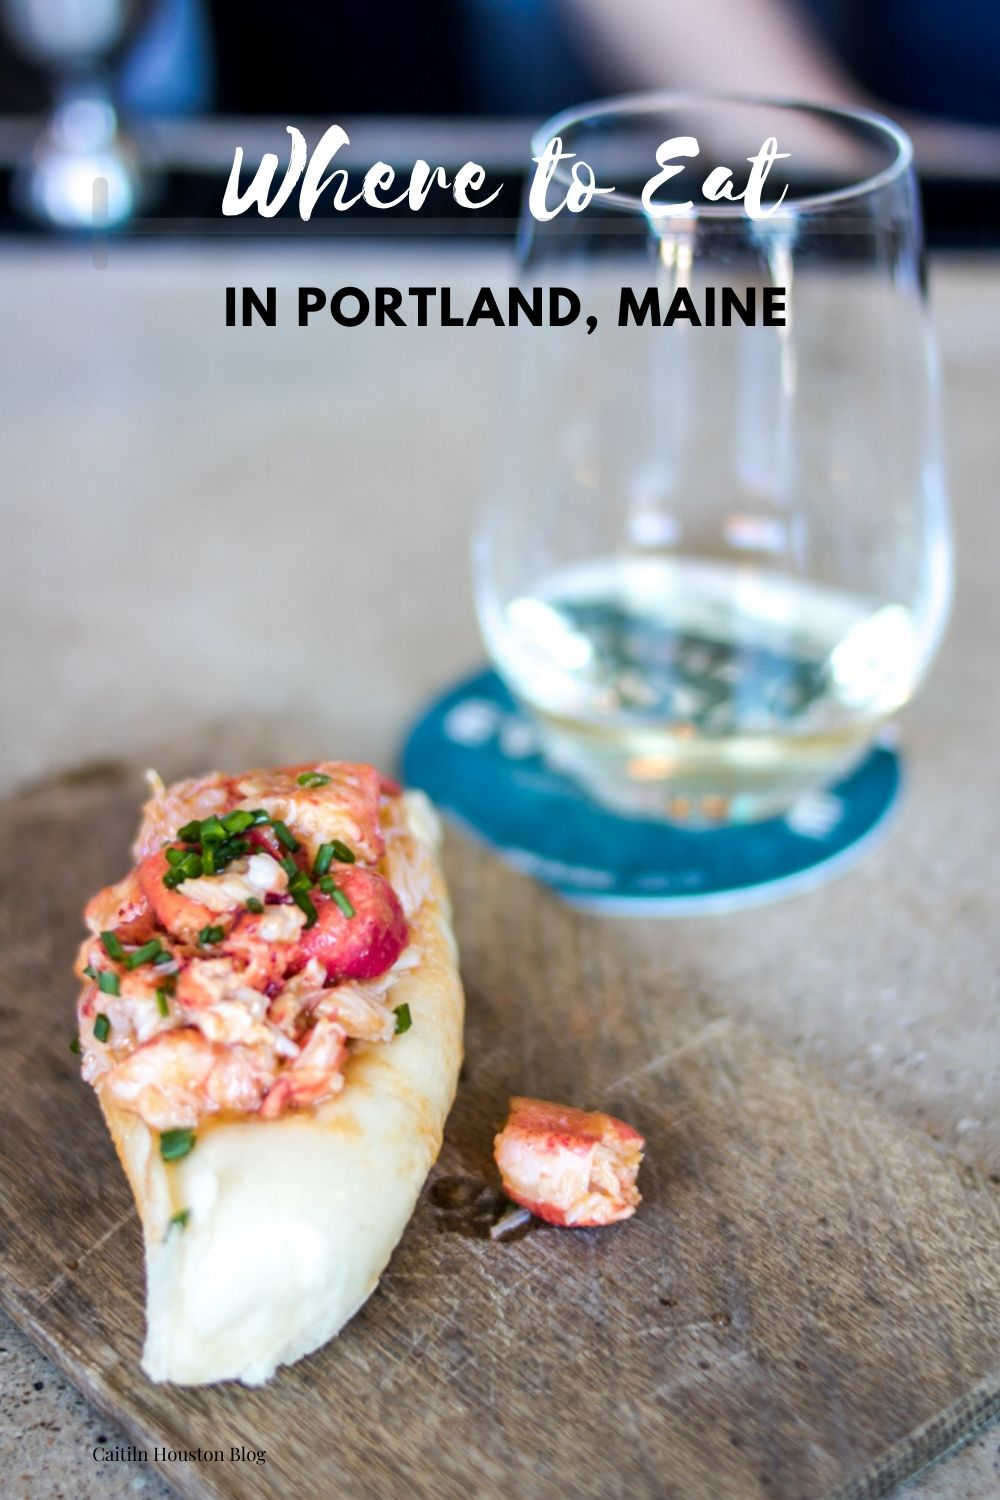 Portland Maine Travel Guide - What to do, where to eat, where to stay in Portland for a New England Getaway by Caitlin Houston